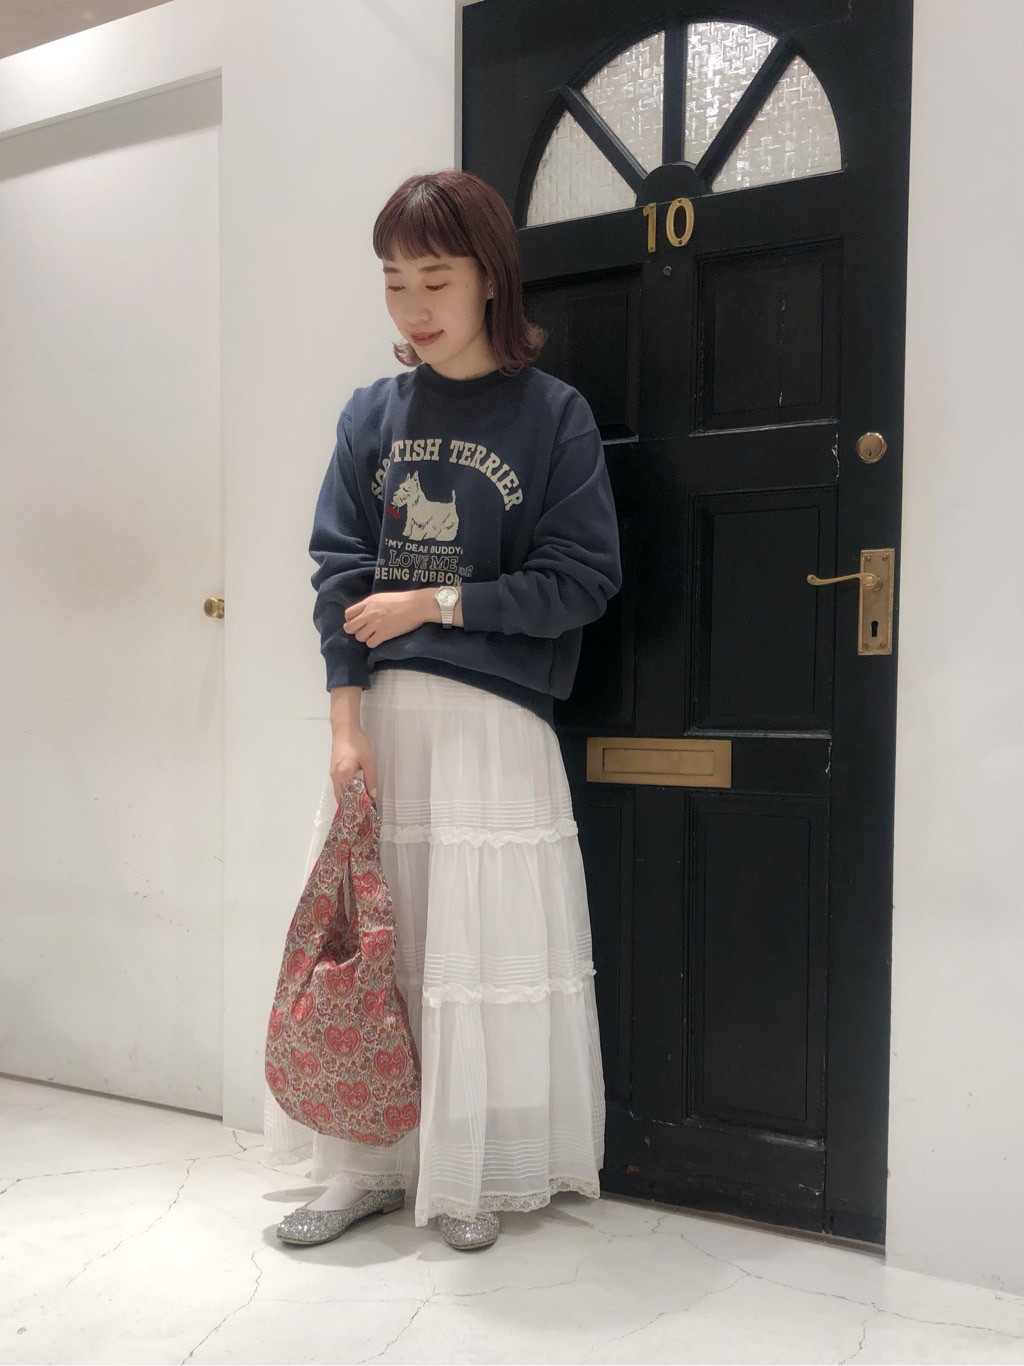 Dot and Stripes CHILD WOMAN ルクアイーレ 身長:157cm 2020.09.10